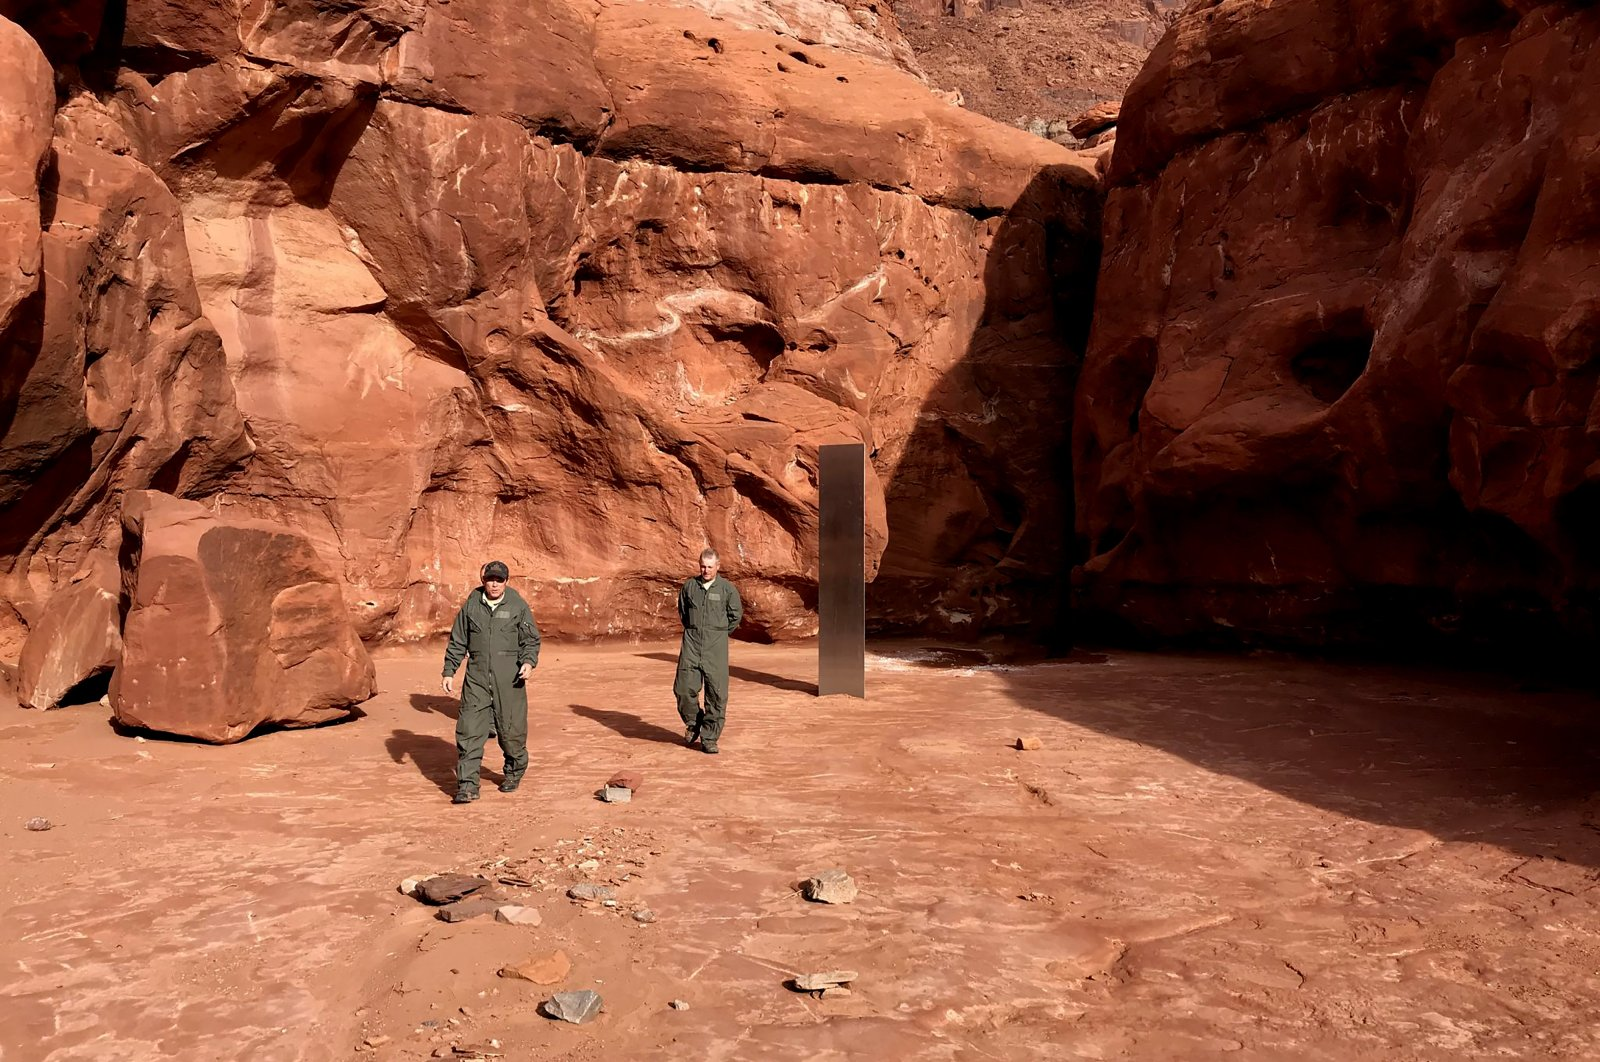 Utah state workers walk near a metal monolith in the ground in a remote area of red rock in the U.S. state of Utah, Nov. 18, 2020. (Utah Department of Public Safety via AP)